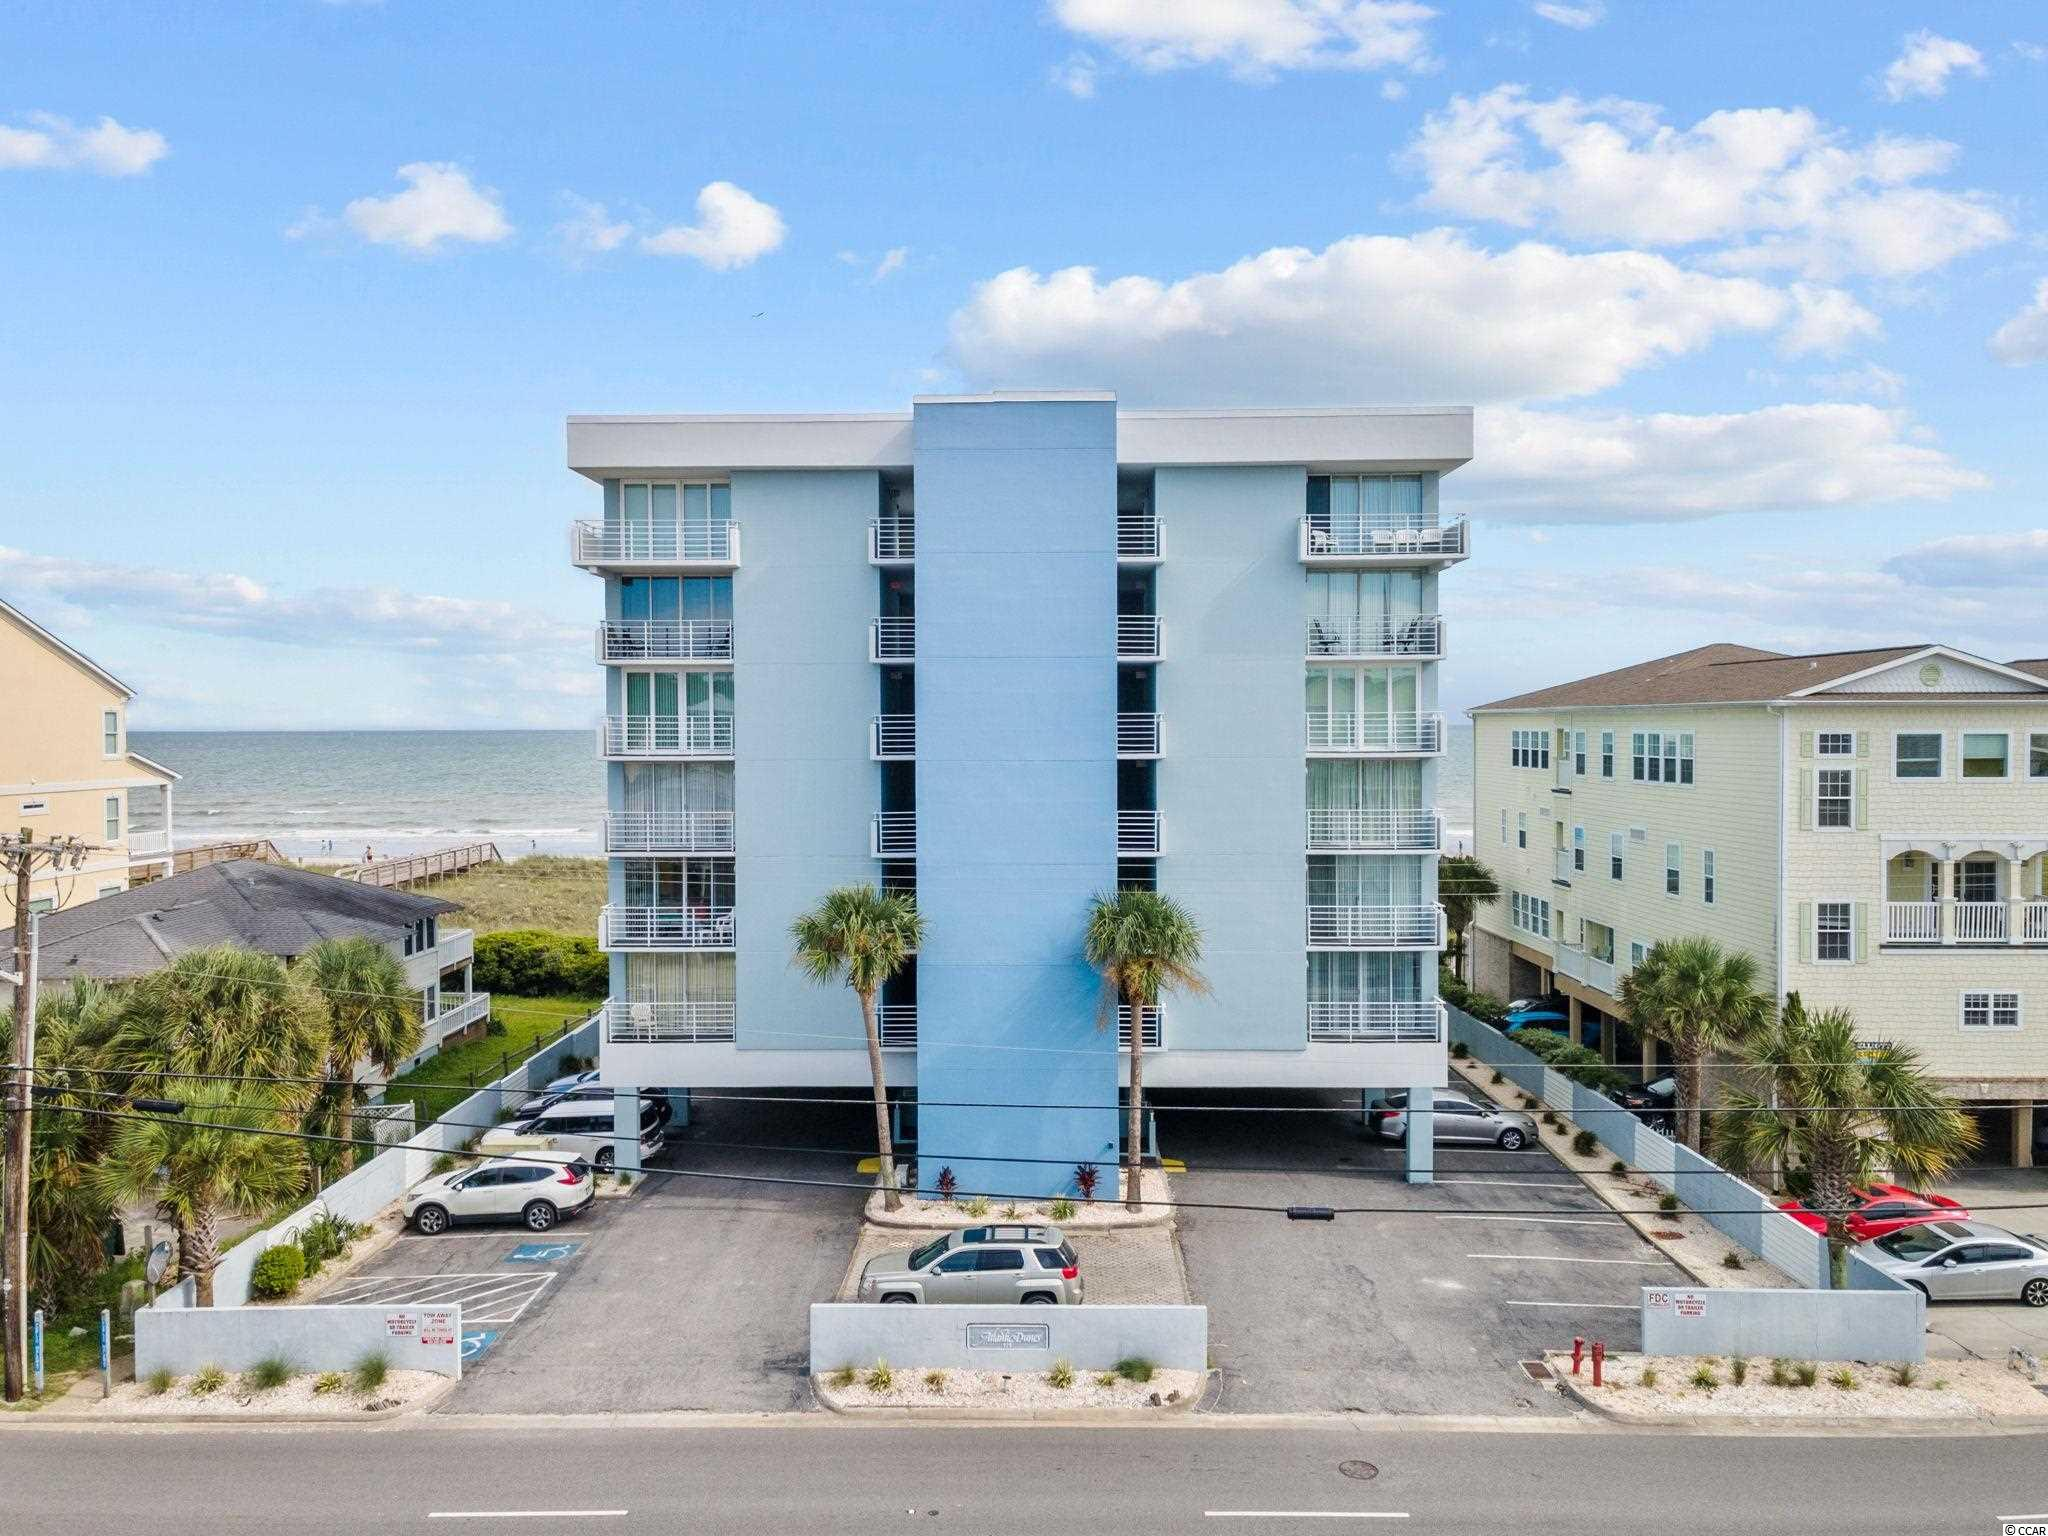 Don't miss this chance at owning a GREAT 4 bedroom, direct oceanfront condo in a quaint, boutique building in the heart of North Myrtle Beach.  This spacious condo features tile flooring in living areas, granite countertops and stainless steel appliances in the kitchen and an oceanfront master suite with private balcony access.  The second master suite features a private balcony overlooking the street side.  The large oceanfront balcony offers vast views of the ocean and at only one story up, makes you fell like you are sitting right on the beach.  Atlantic Dunes is one of those buildings that units do not come up for sale that often...and when they do, they go quick.  There's parking under the building as well as overflow parking across the street.  There's a large oceanfront pool and access to the beach.